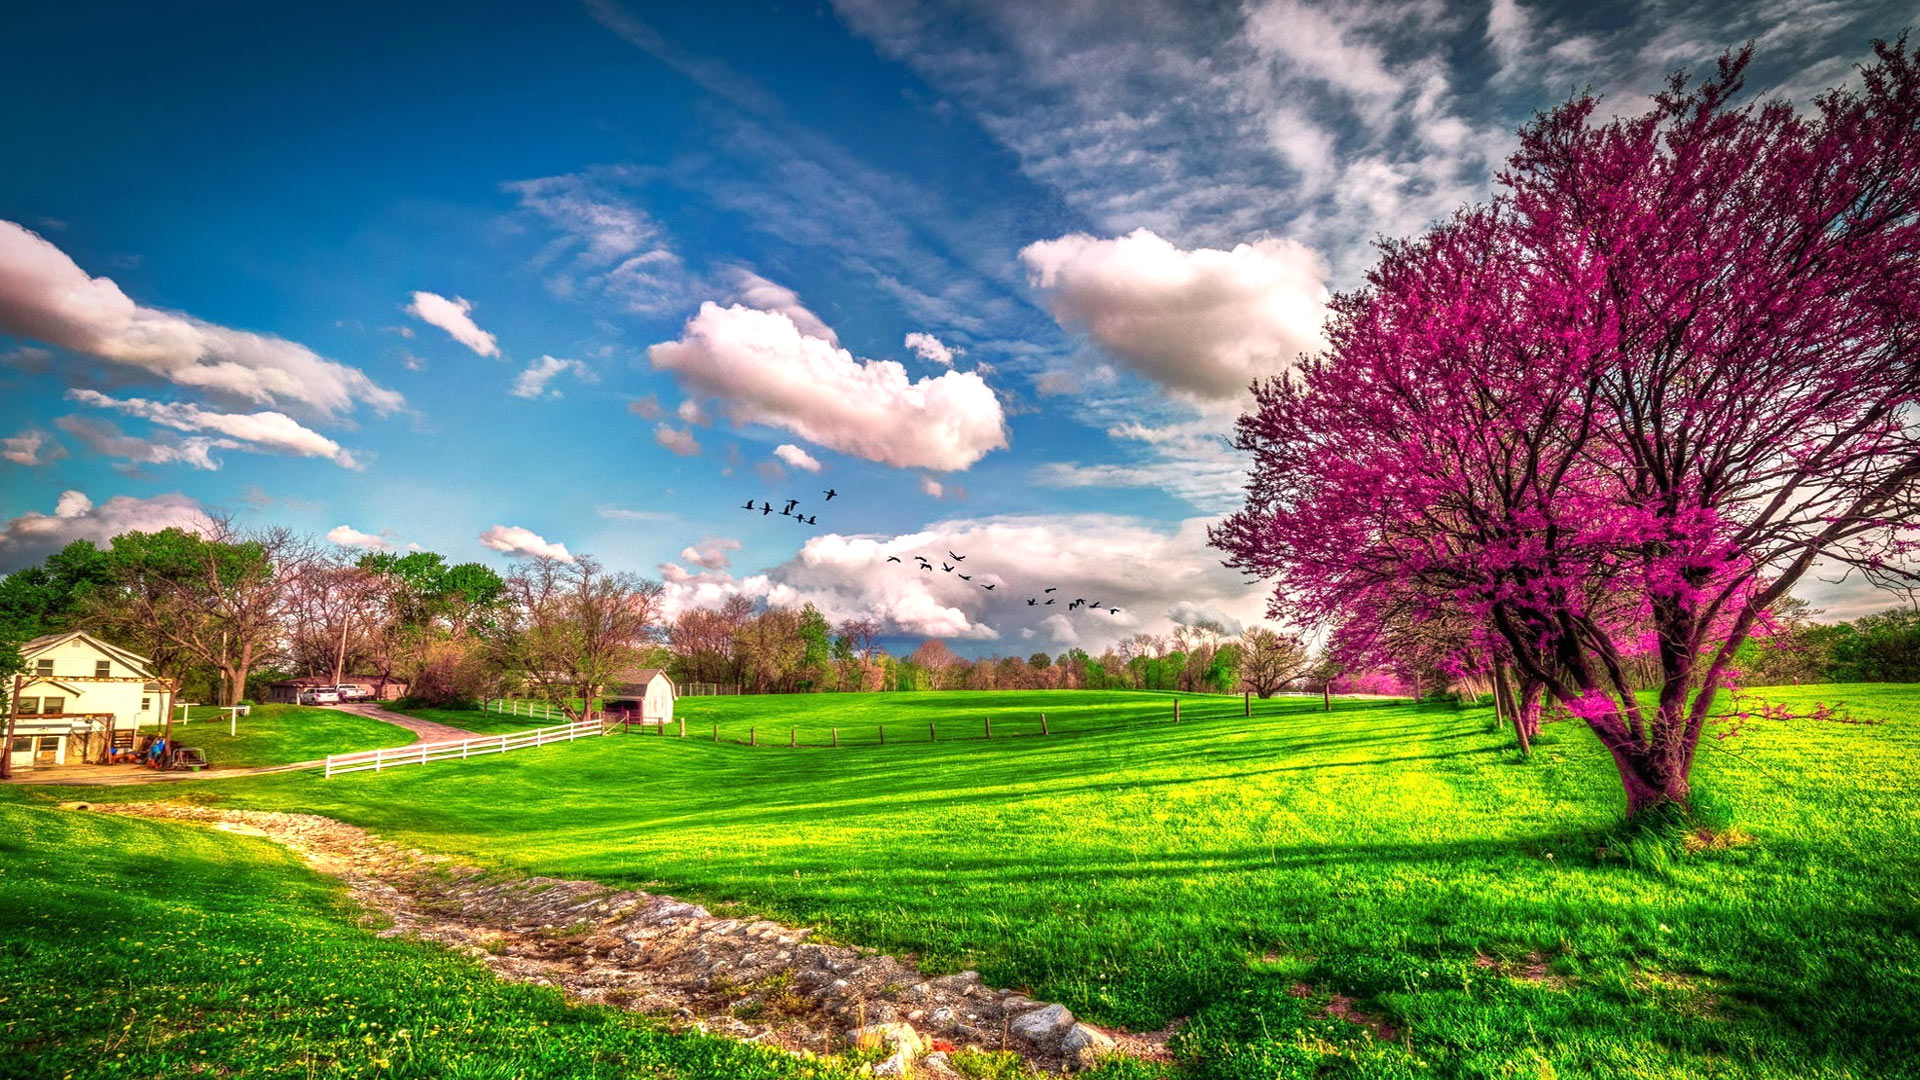 Beautiful spring wallpapers Pictures Images